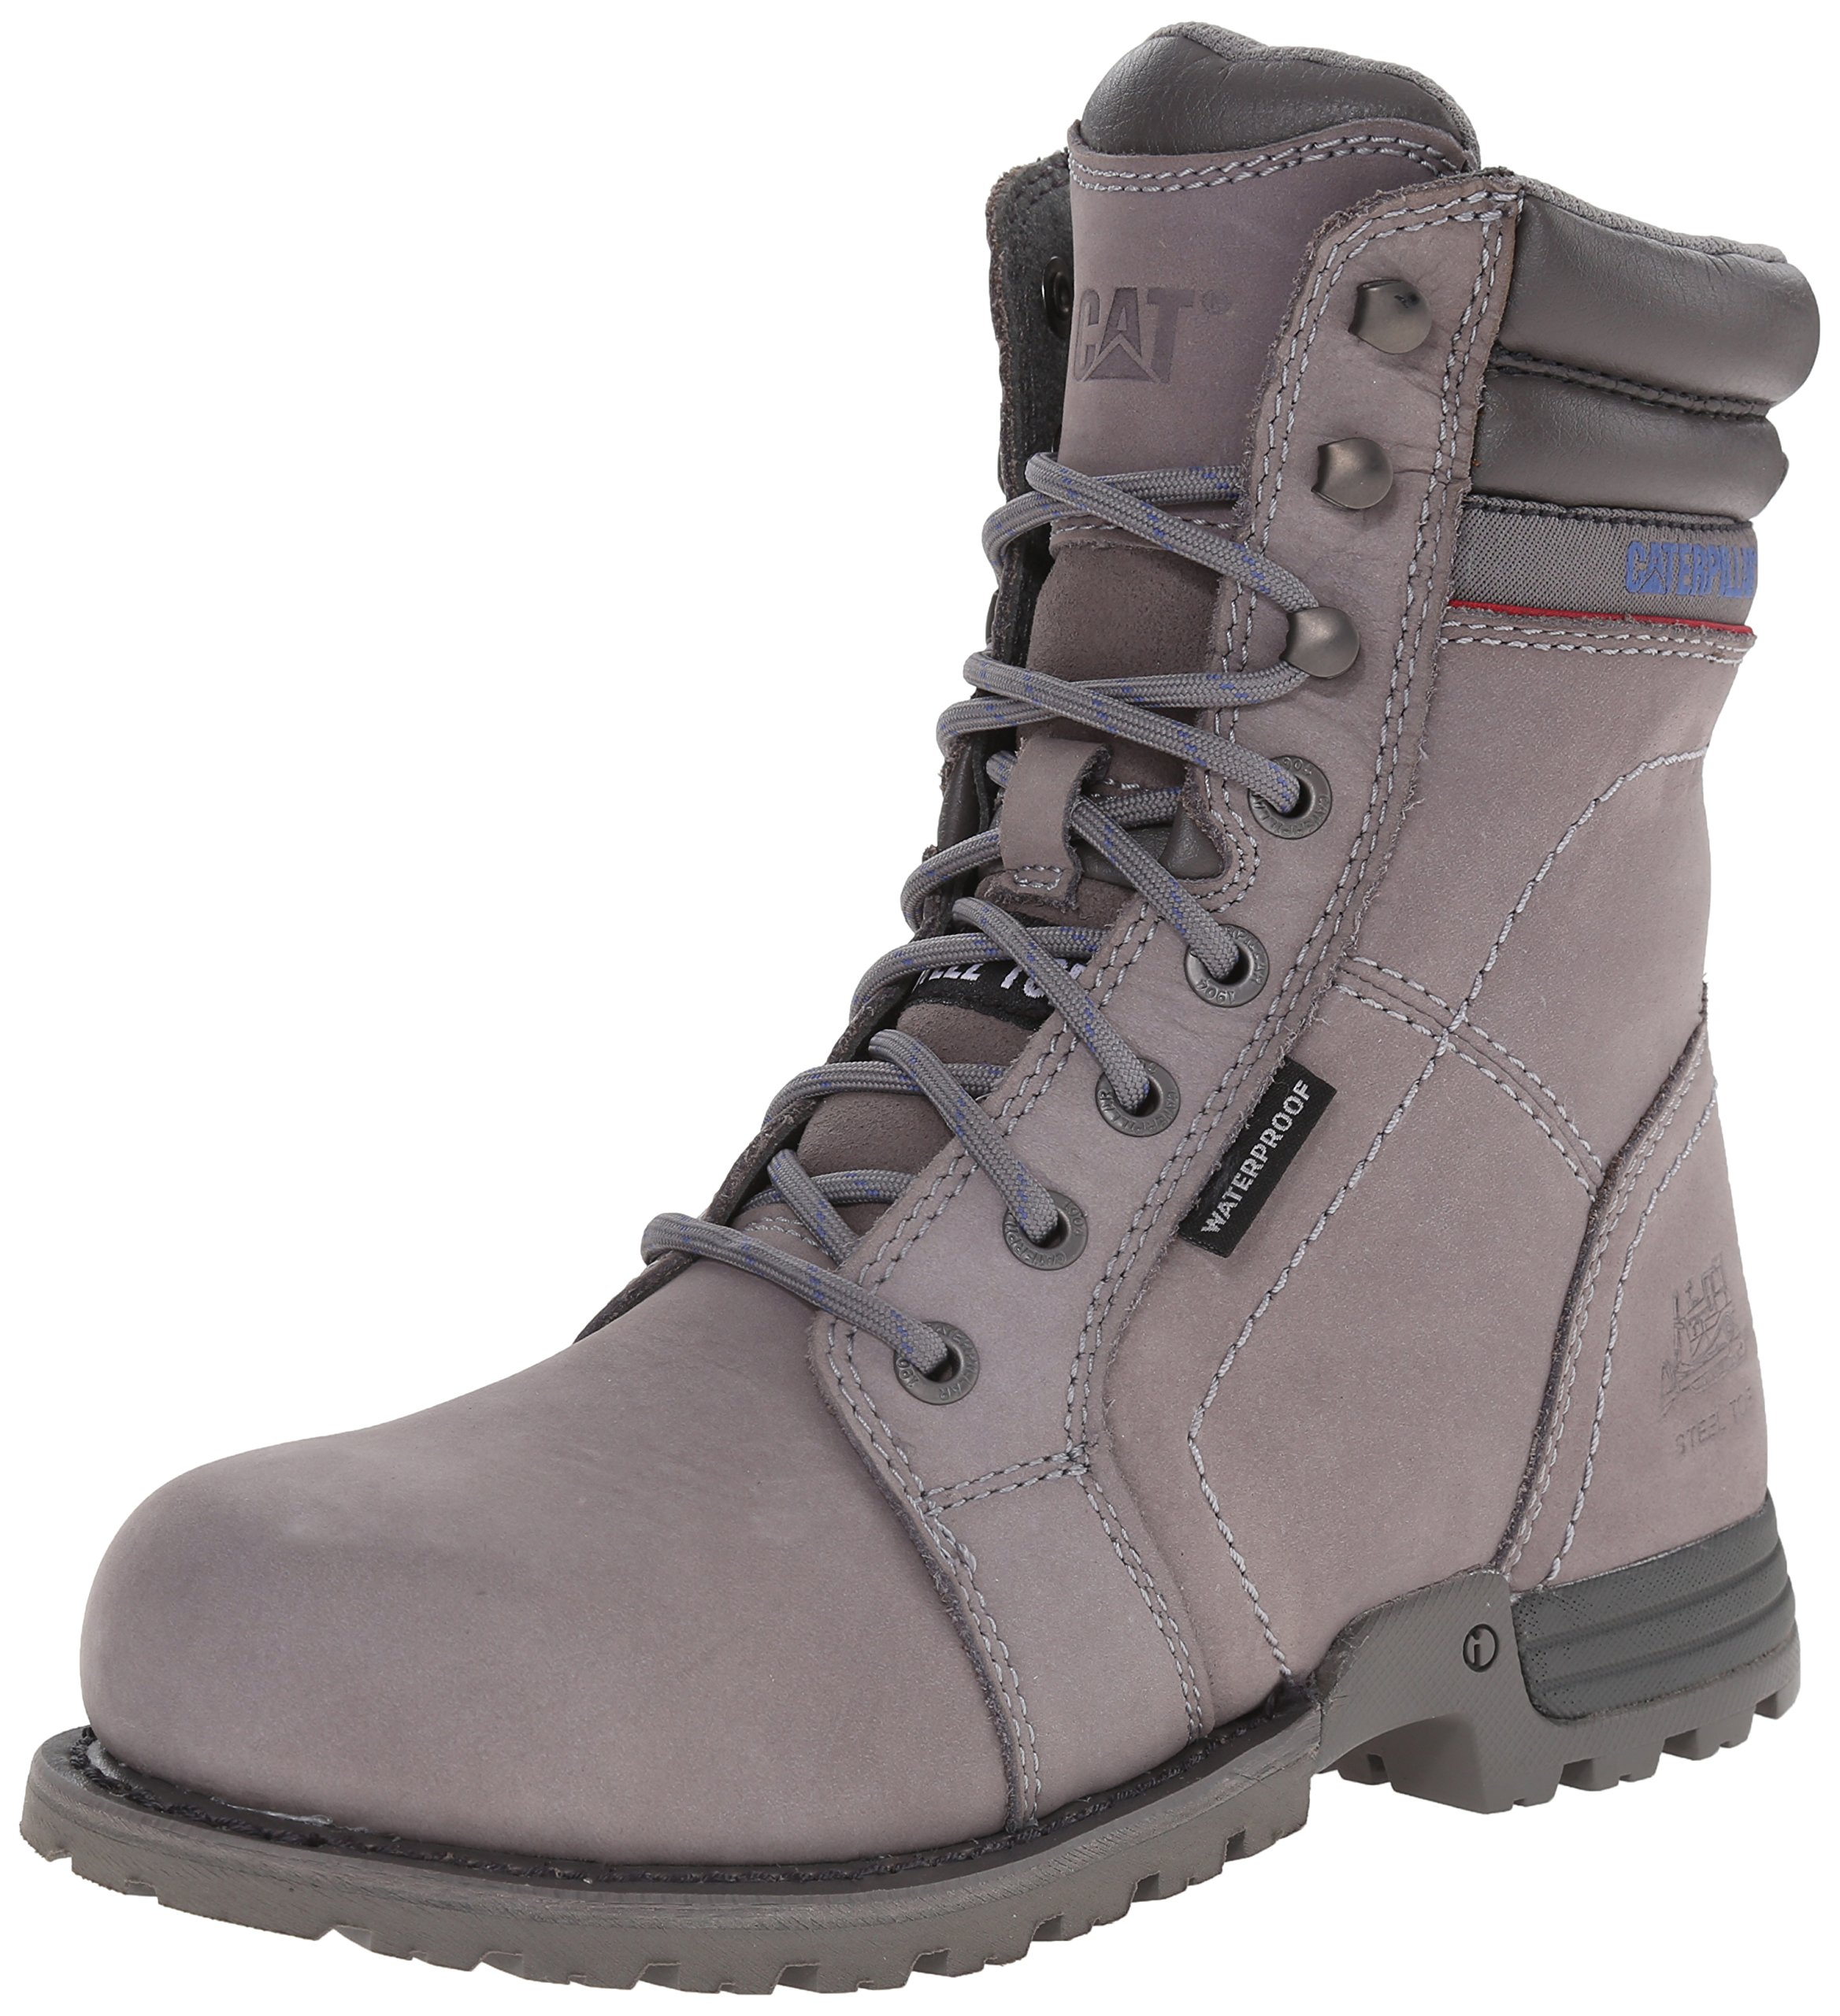 Caterpillar Women's Echo Waterproof Steel Toe Work Boot, Frost Grey, 8 M US by Caterpillar